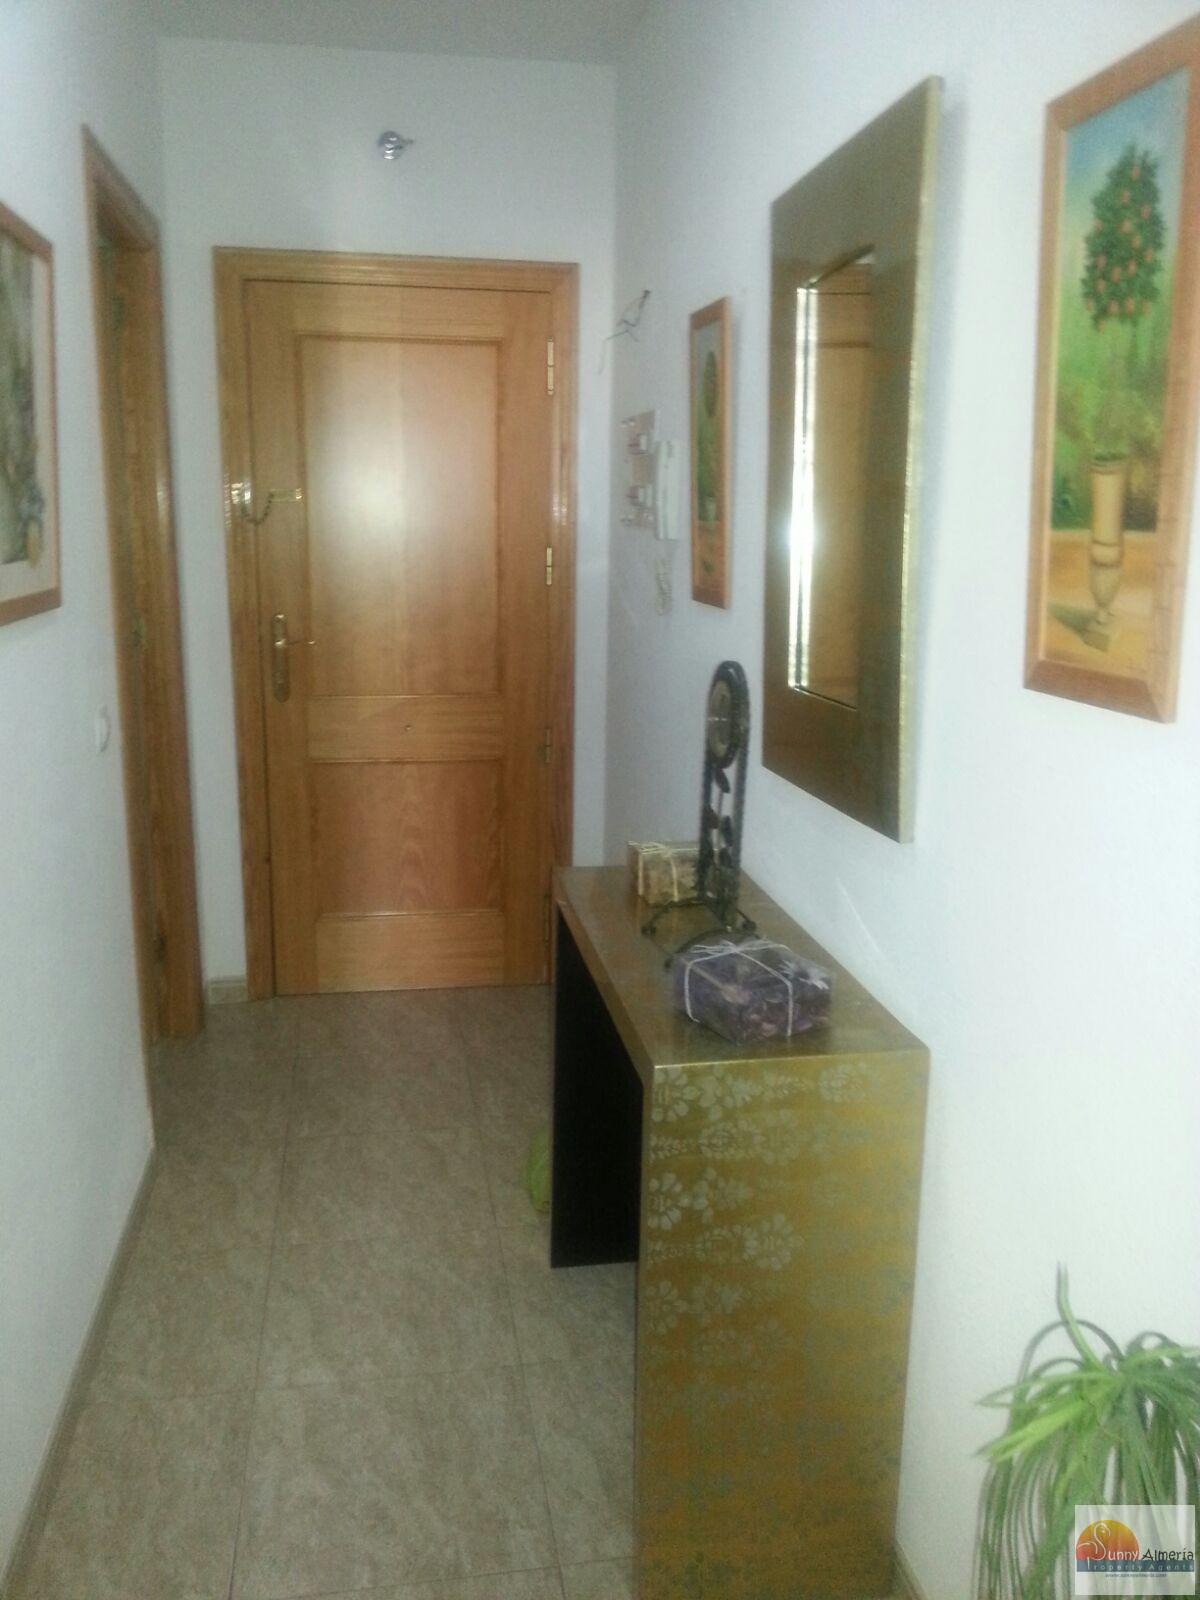 Flat for rent in Calle Buenos Aries 40 (Roquetas de Mar), 400 €/month